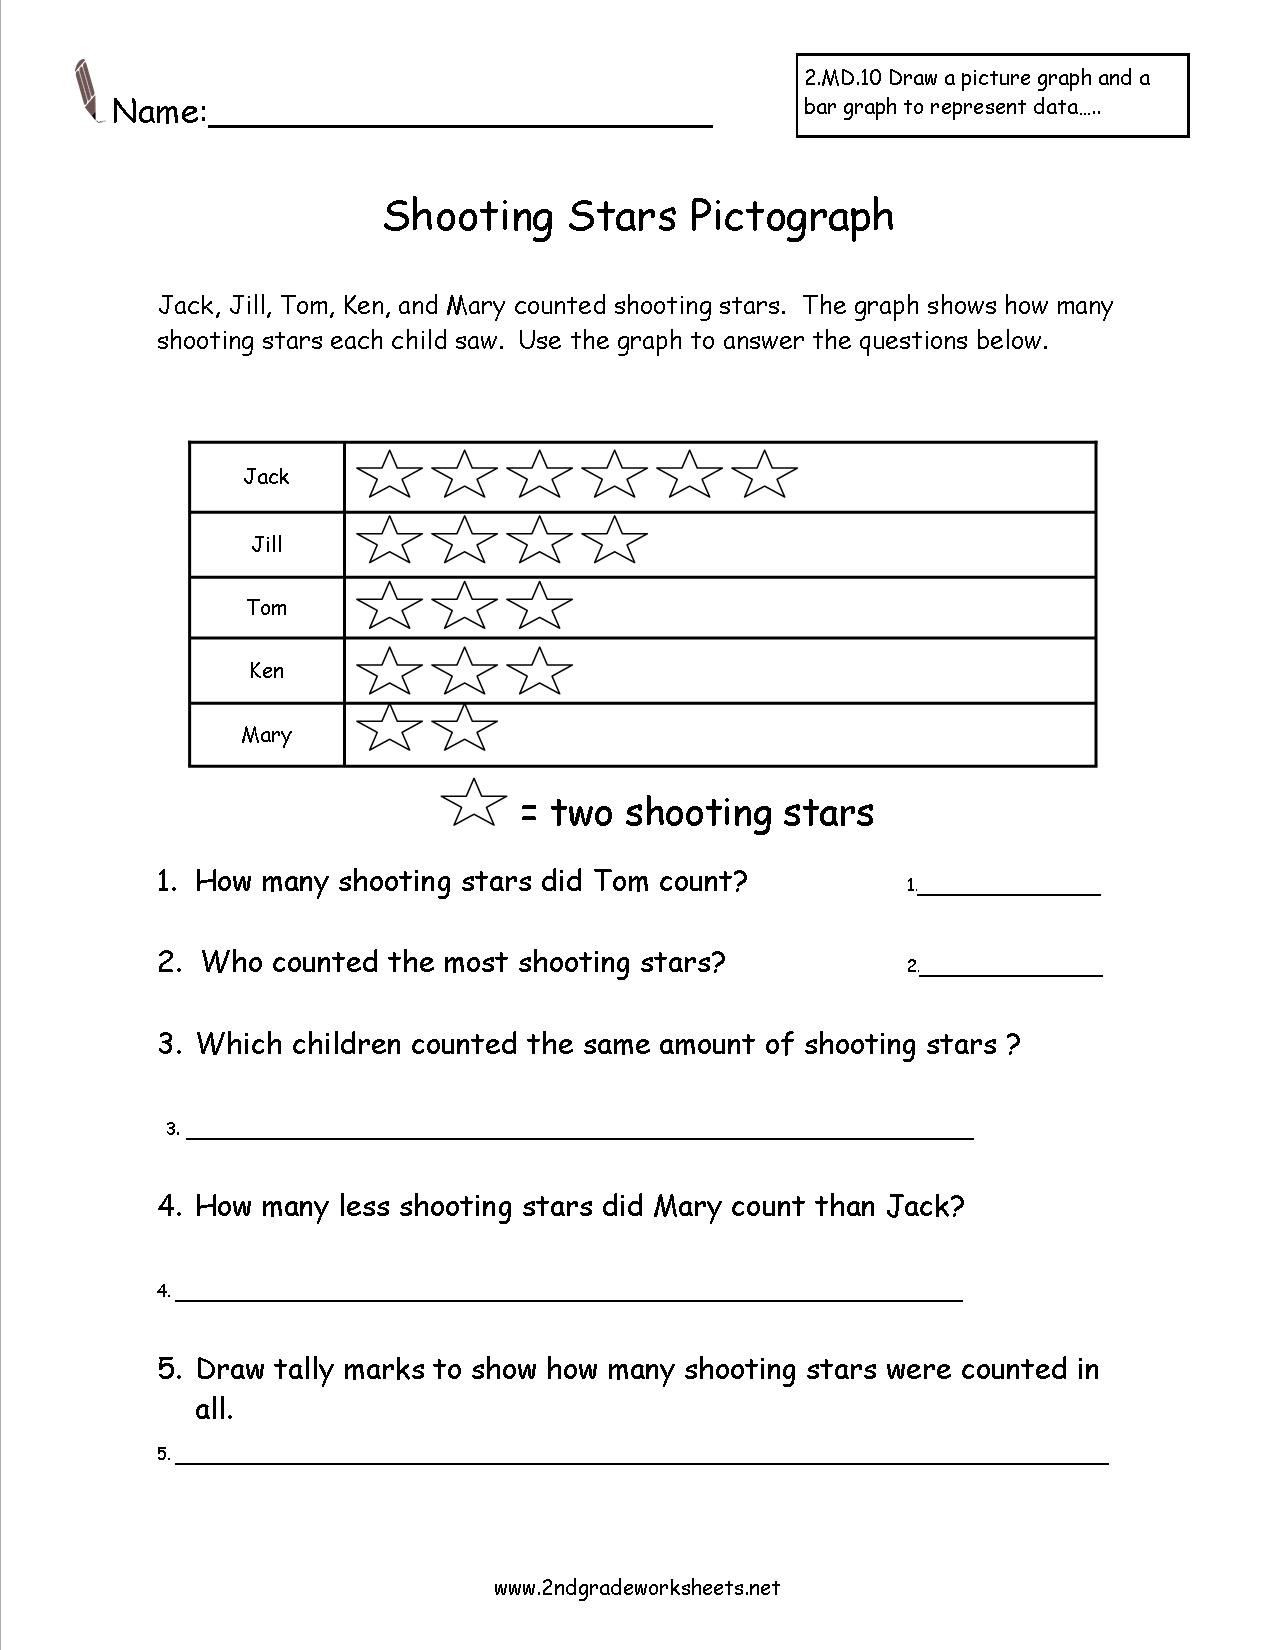 5th Grade Phonics Worksheets Shooting Stars Pictograph Worksheet Phonics Worksheets